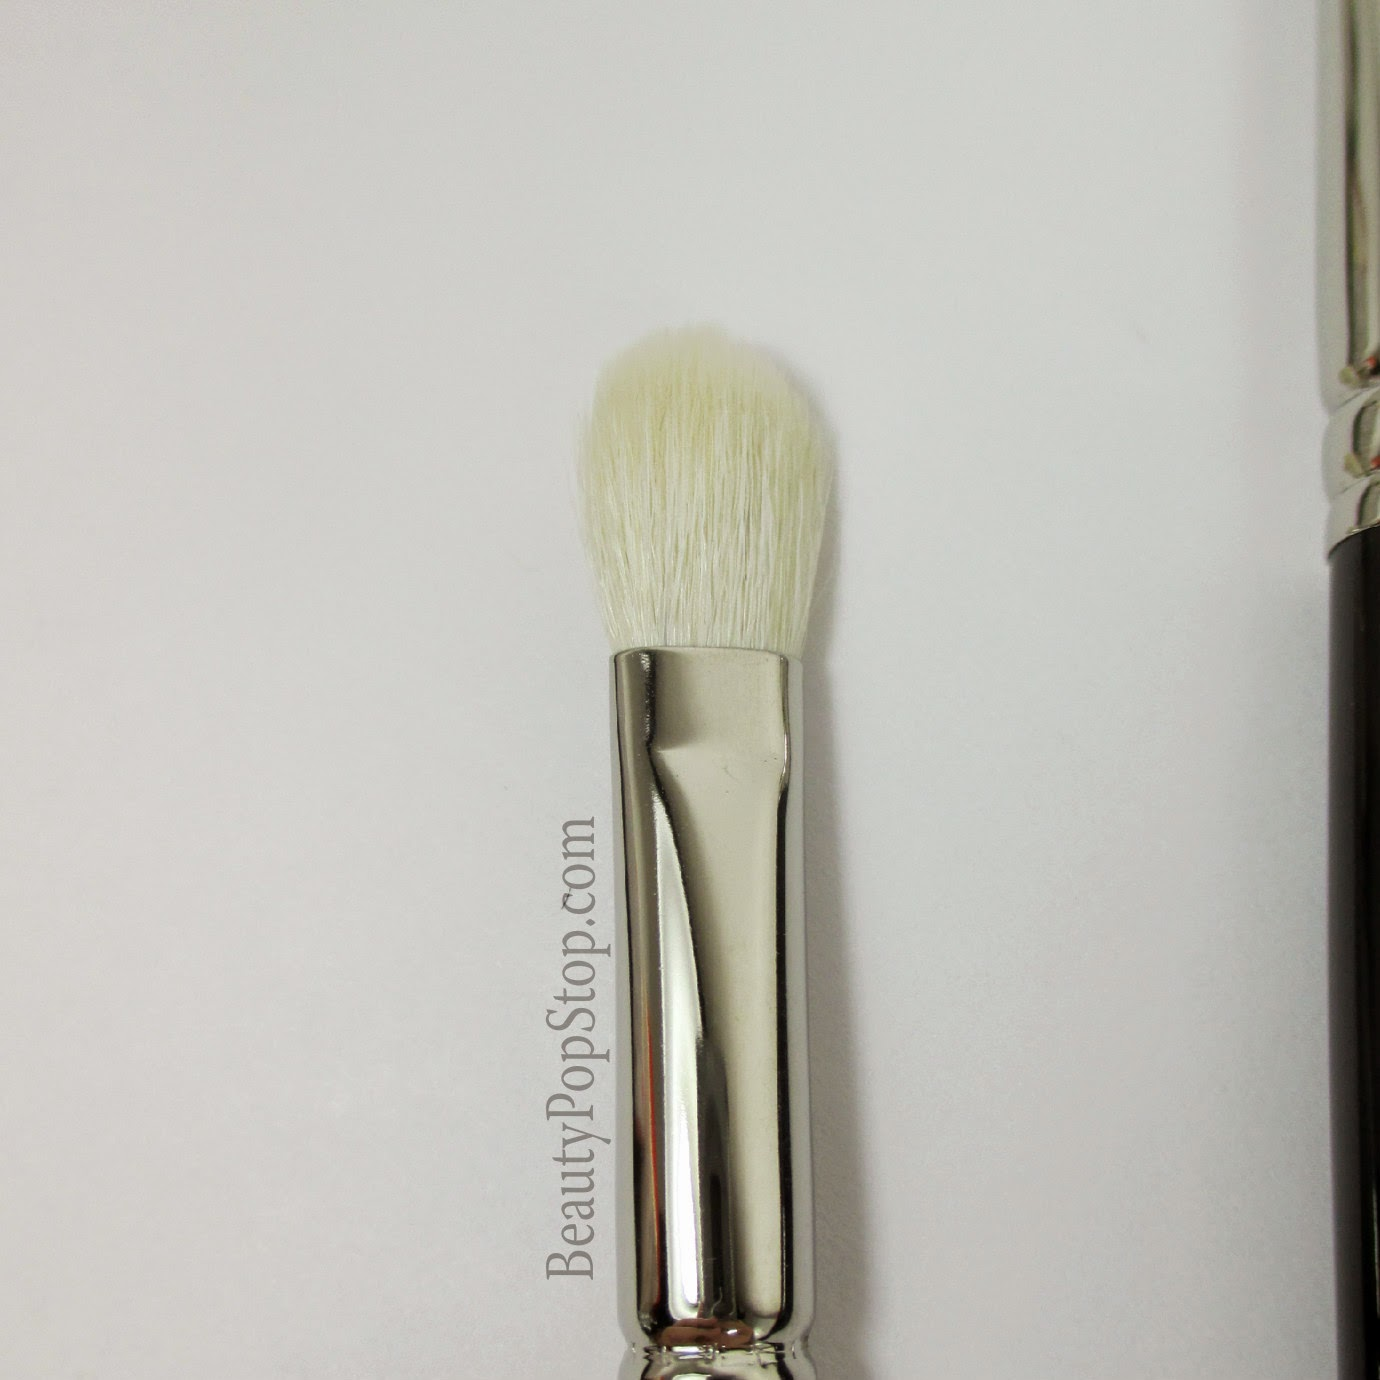 hakuhodo J5523 japanese makeup brush review